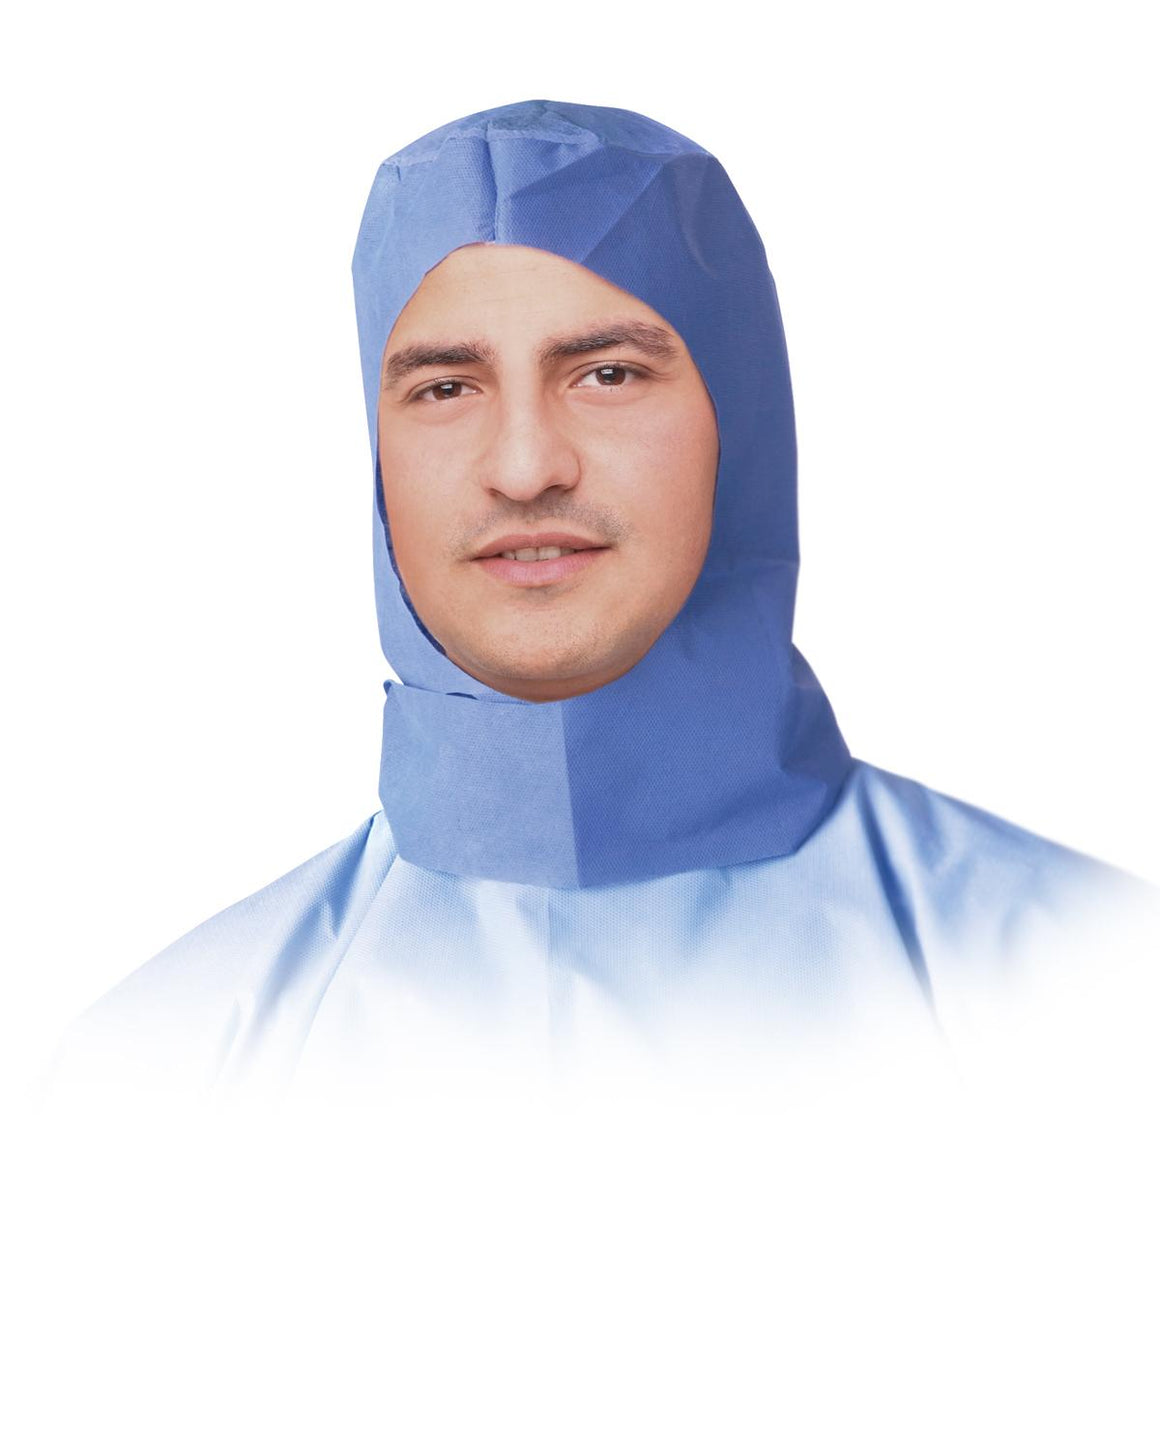 Surgeon Hoods,Blue,One Size Fits Most, Case of 300